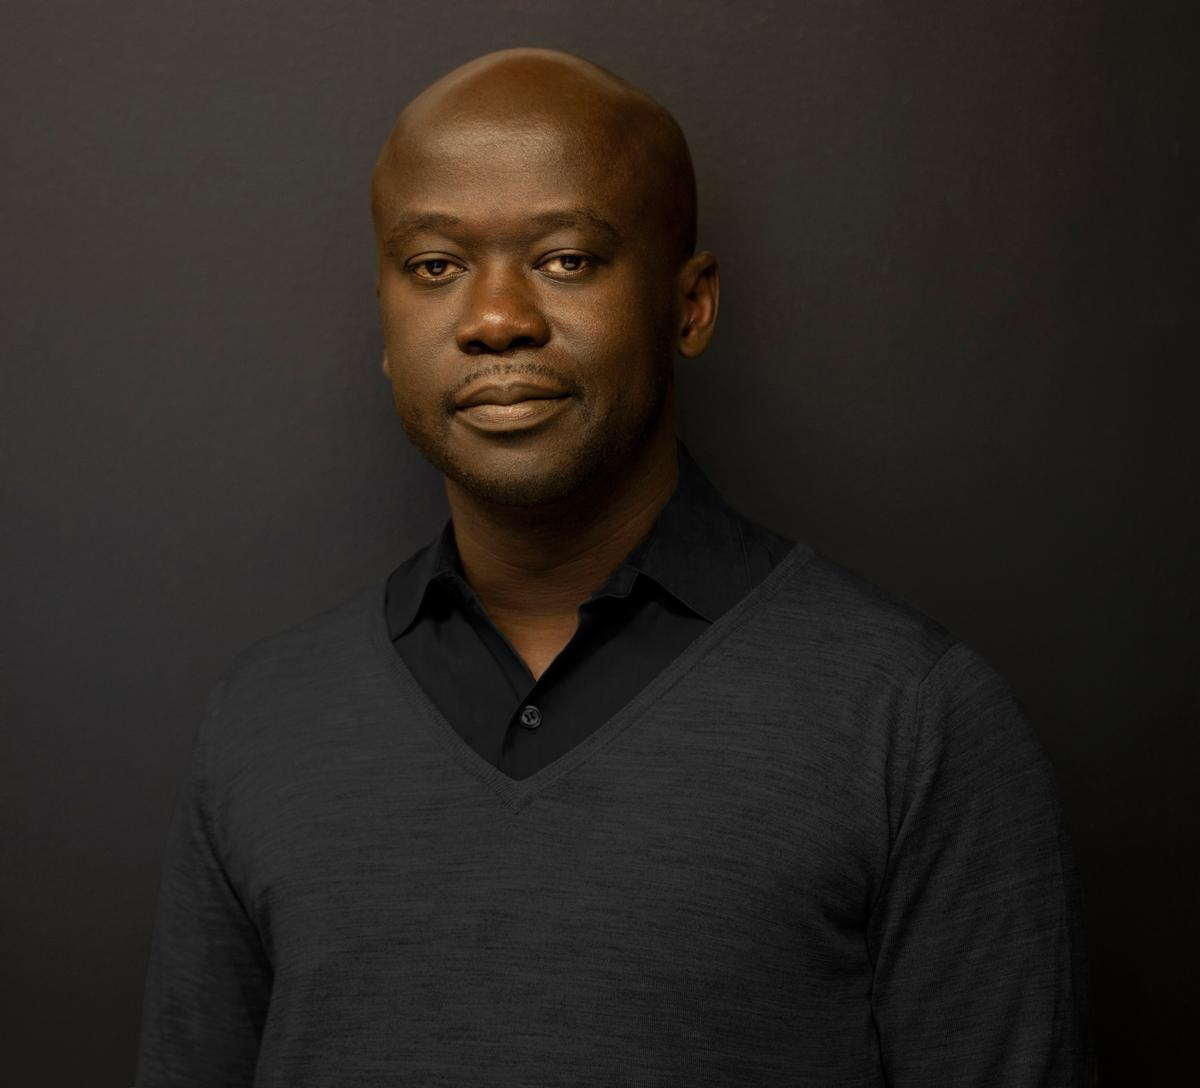 David Adjaye will help select the architect designing the 2017 Serpentine Pavilion / Adjaye Associates